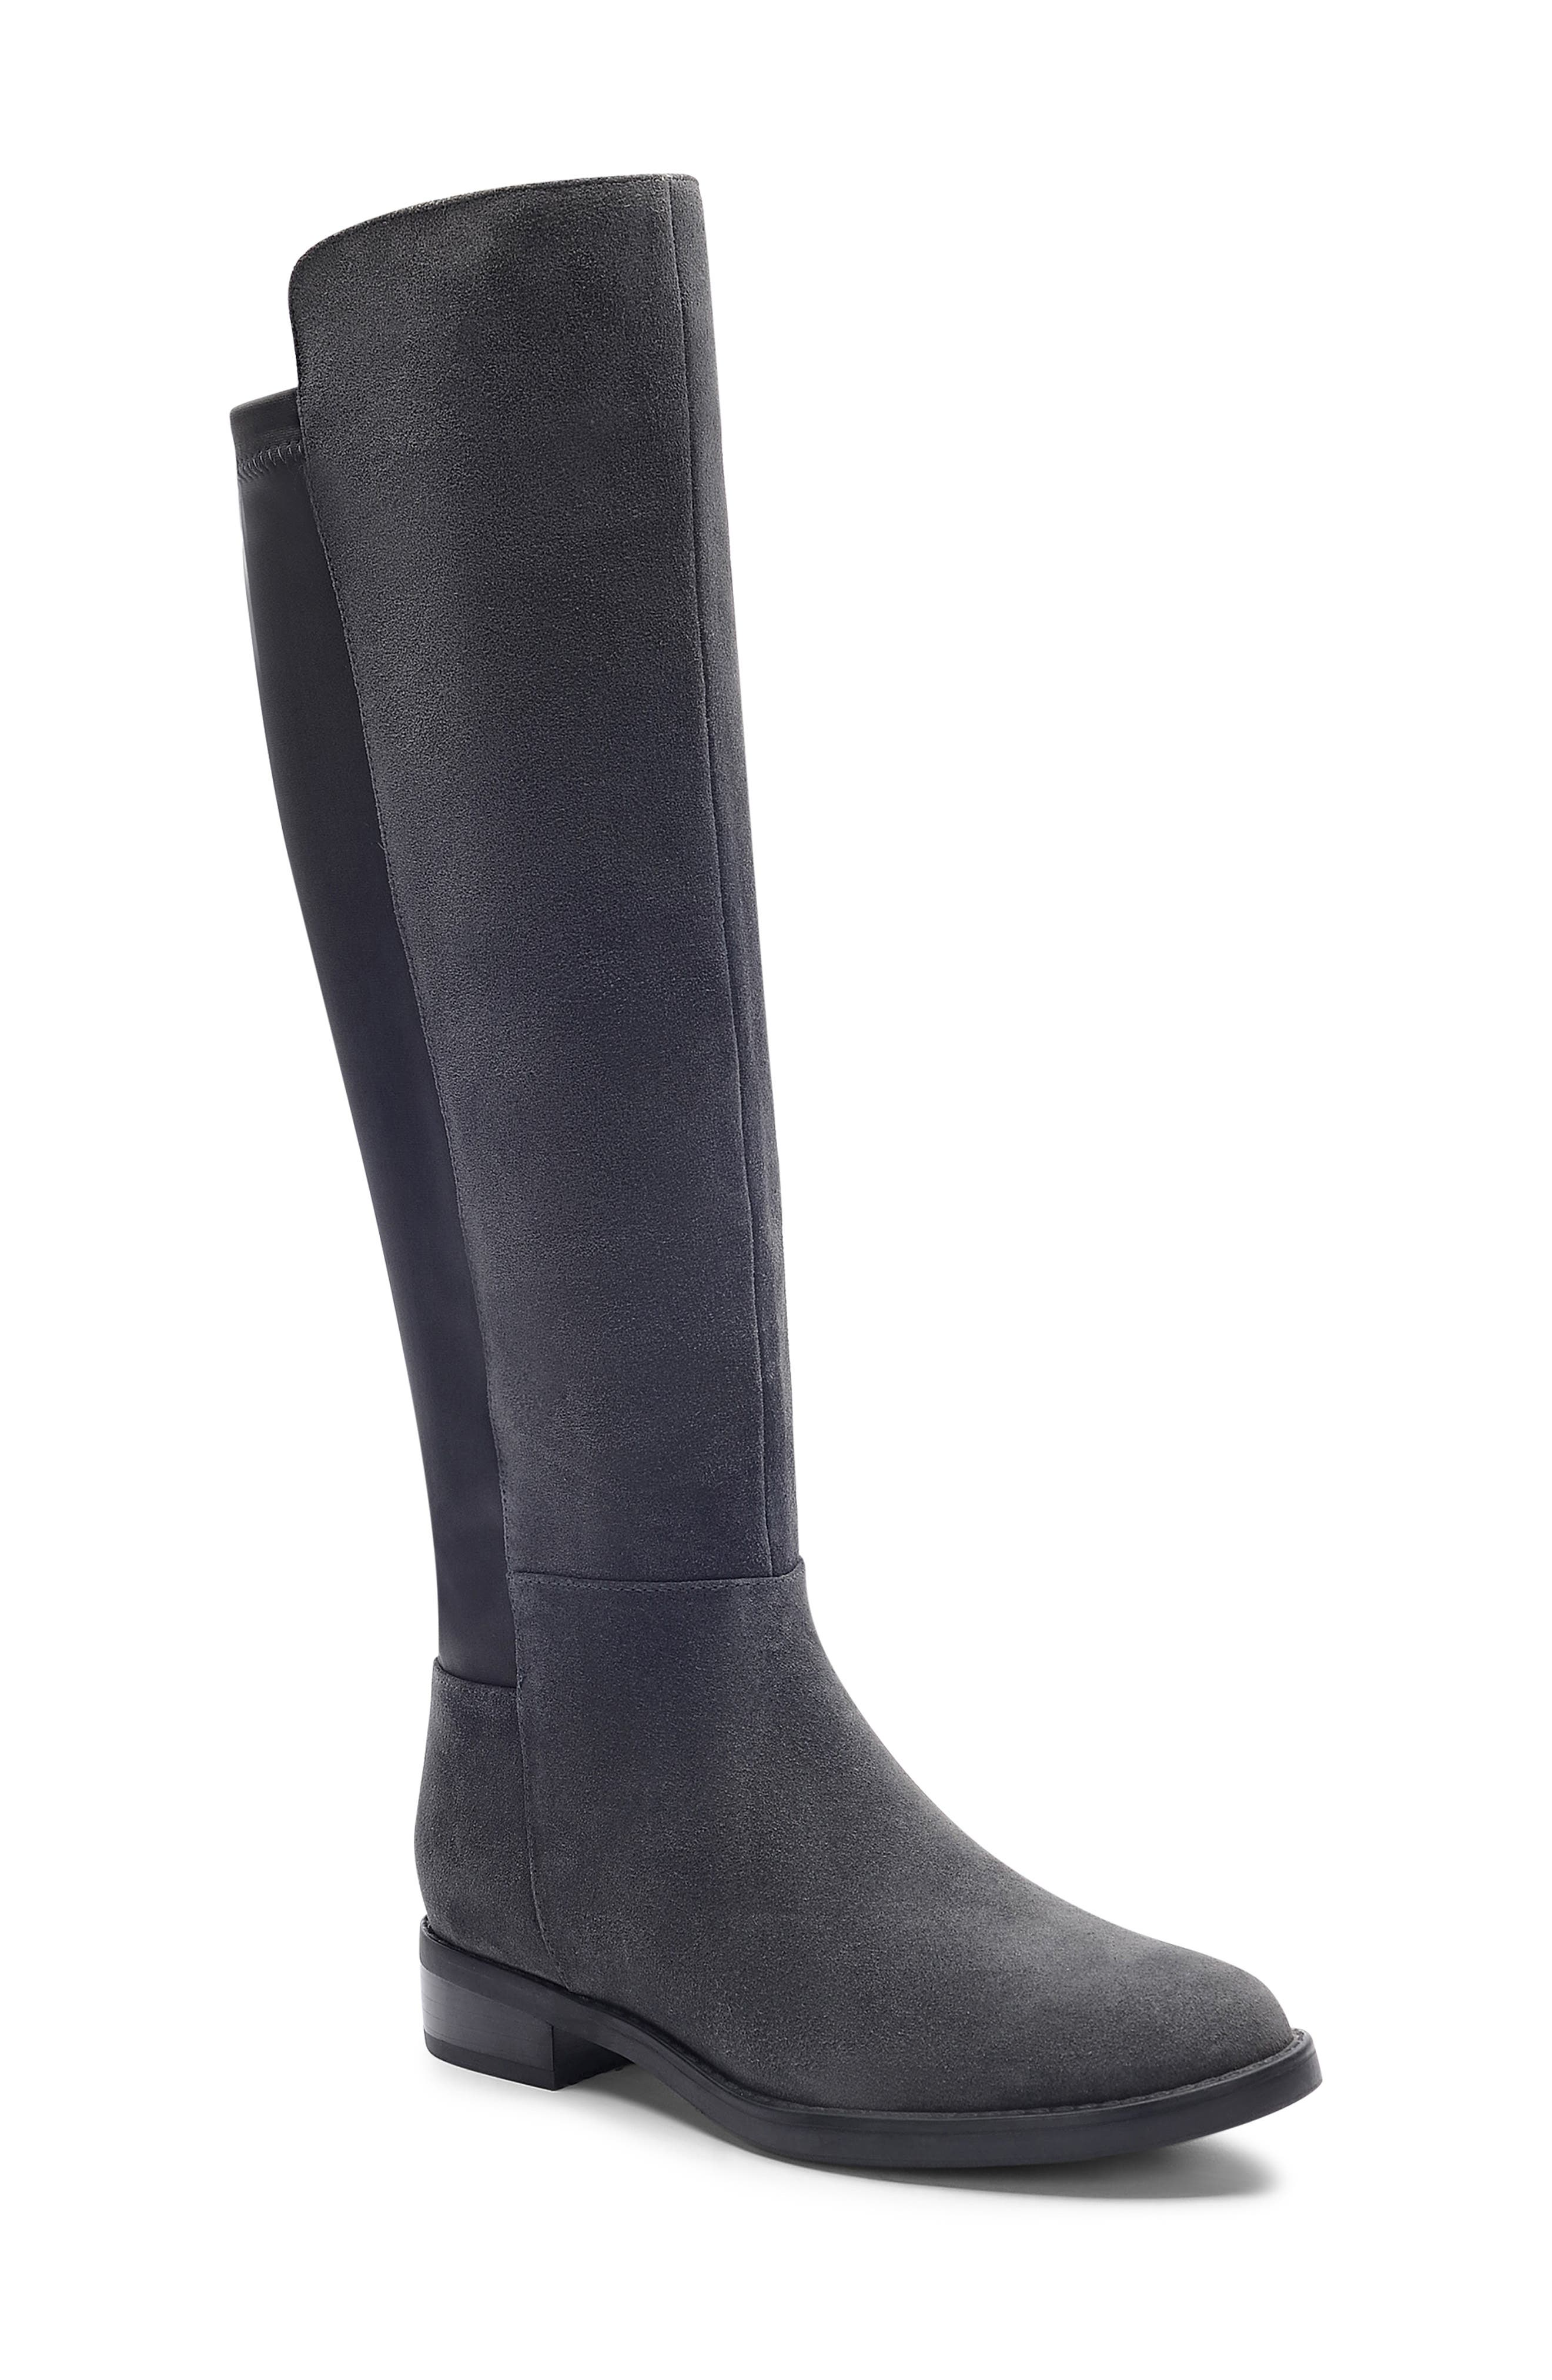 Blondo Ellie Waterproof Knee High Riding Boot- Grey